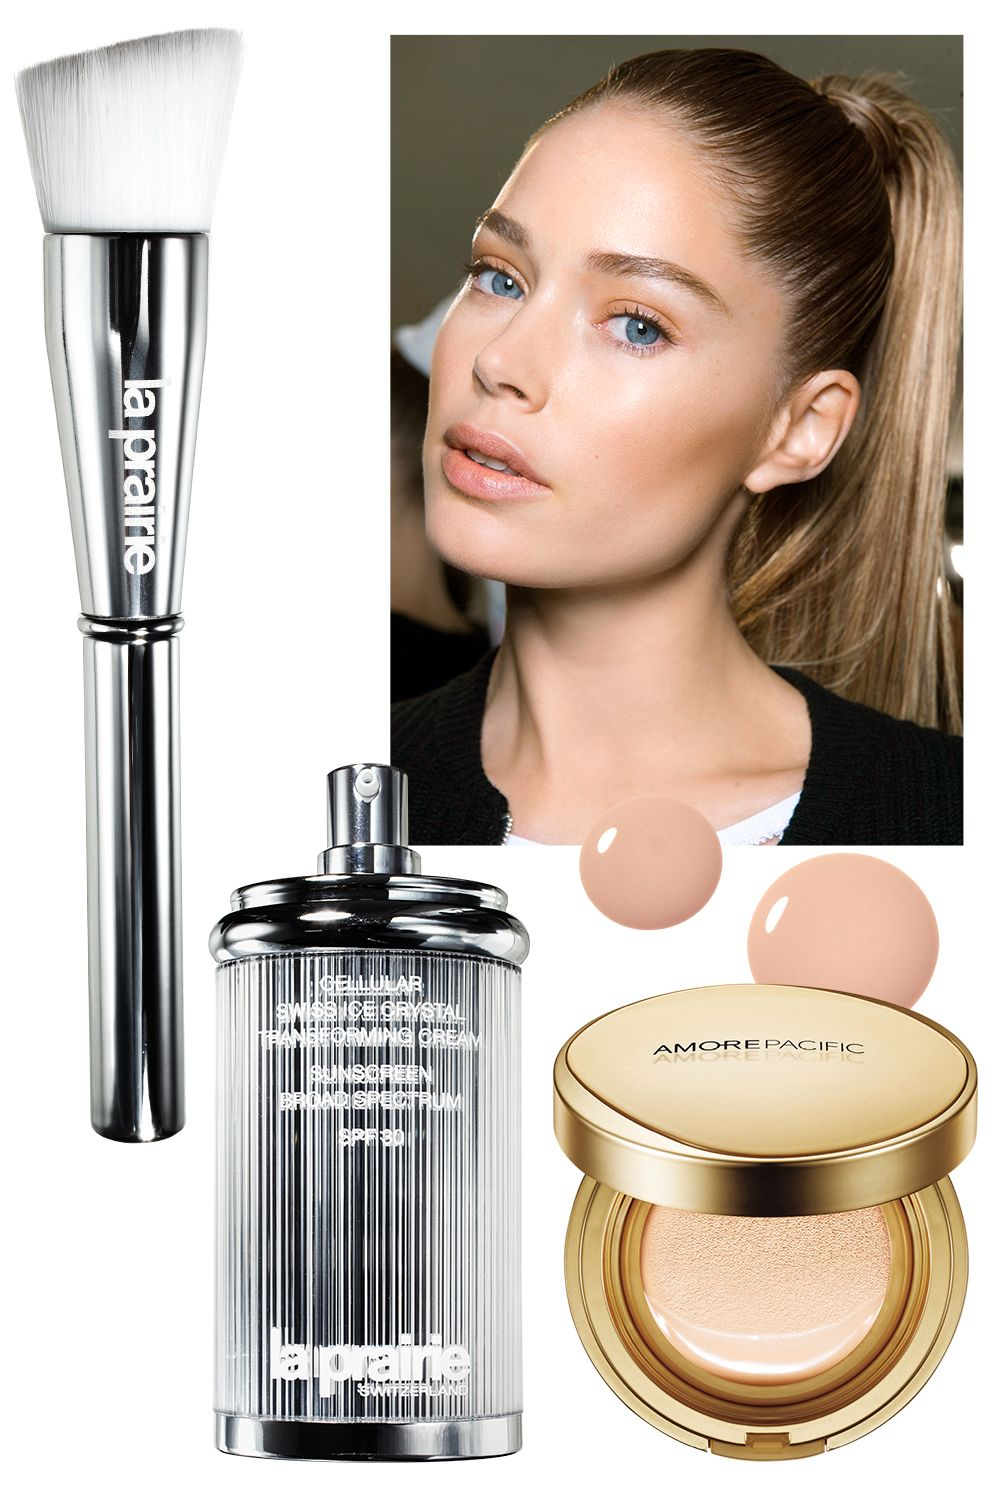 """<p>""""The most crucial anti-ager is SPF,"""" insists San Diego dermatologist Melanie Palm. Shave time off your morning routine by using a base with flaw fighters and SPF added in. For full coverage with potent green-tea extracts, pat on AmorePacific's creamy foundation. La Prairie's light tint has skin-protective algae and botanical extracts.</p><p><strong>La Prairie</strong> Cellular Swiss Ice Crystal Transforming Cream SPF 30, $195, <a href=""""http://www.laprairie.com/default/ice-crystal/cellular-swiss-ice-crystal-cream/95790-01128-23.html"""" target=""""_blank"""">laprairie.com</a>; For the ultra-perfect complexion seen at Balmain, try<strong> L'Oréal Paris</strong> Visible Lift CC Cream SPF 20, $13, <a href=""""http://www.lorealparisusa.com/en/products/makeup/face/bb-cream/visible-lift-cc-cream.aspx"""" target=""""_blank"""">lorealparis.com</a>; <strong>AmorePacific </strong>Age Correcting Foundation Cushion SPF 25, $80, <a href=""""http://us.amorepacific.com/age-correcting-foundation-cushion-broad-spectrum-spf-25-104?gclid=CjwKEAjwlfO3BRDR4Pj_u-iO2U0SJAD88y1SBrCVkg8FgBd5AtvS859HGCKNJgvaqoLnbgGE-qivehoCjFrw_wcB&gclsrc=aw.ds"""" target=""""_blank"""">amorepacific.com</a>. </p>"""